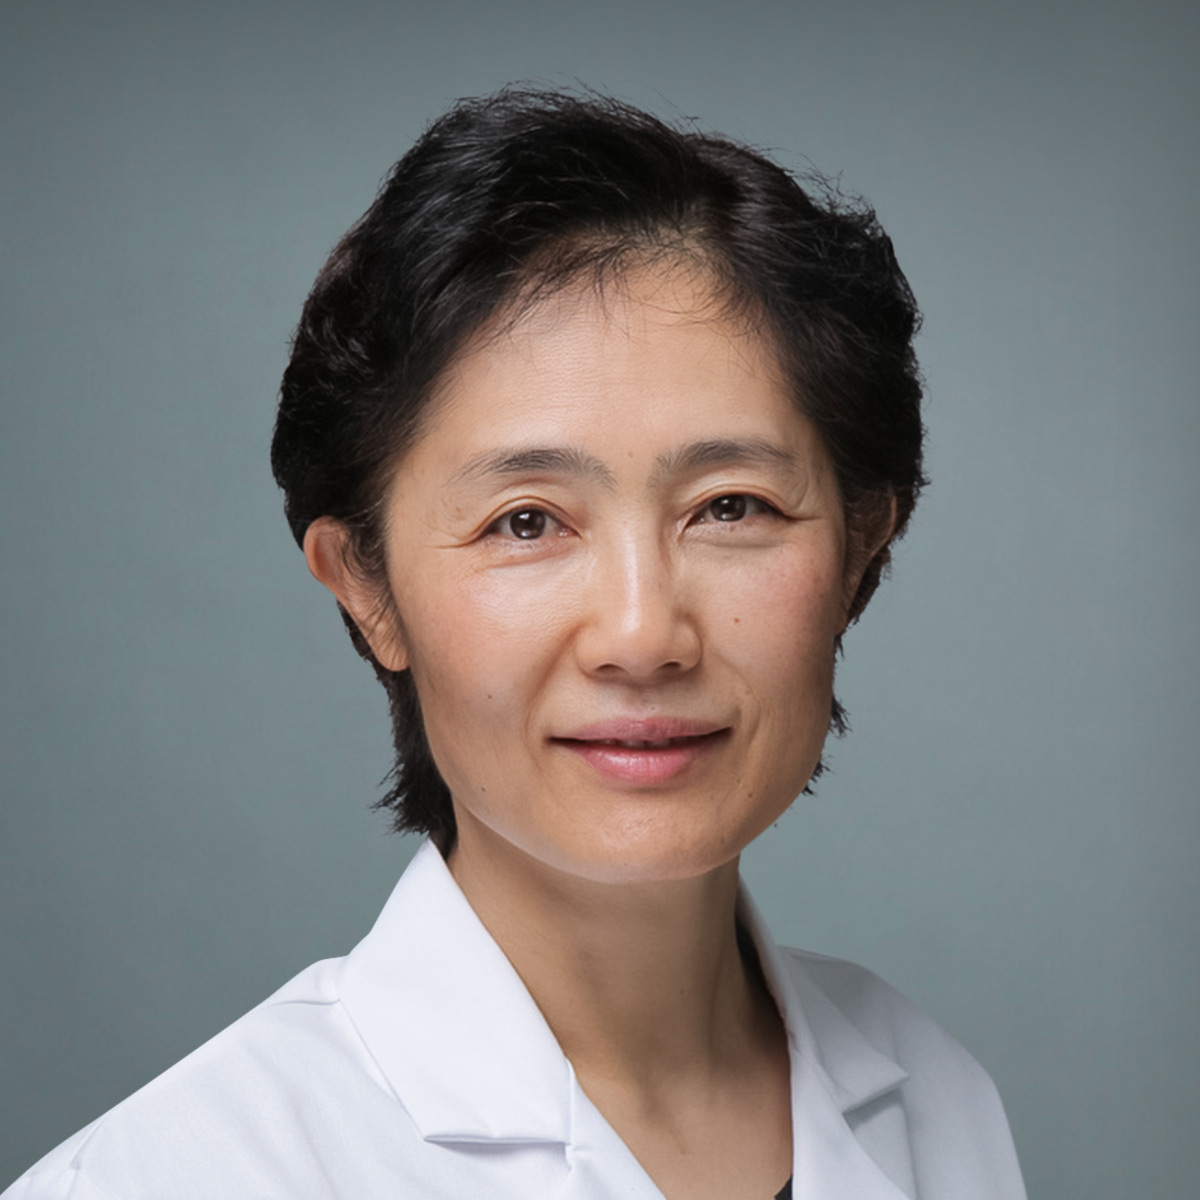 Helen Wang at [NYU Langone Health]